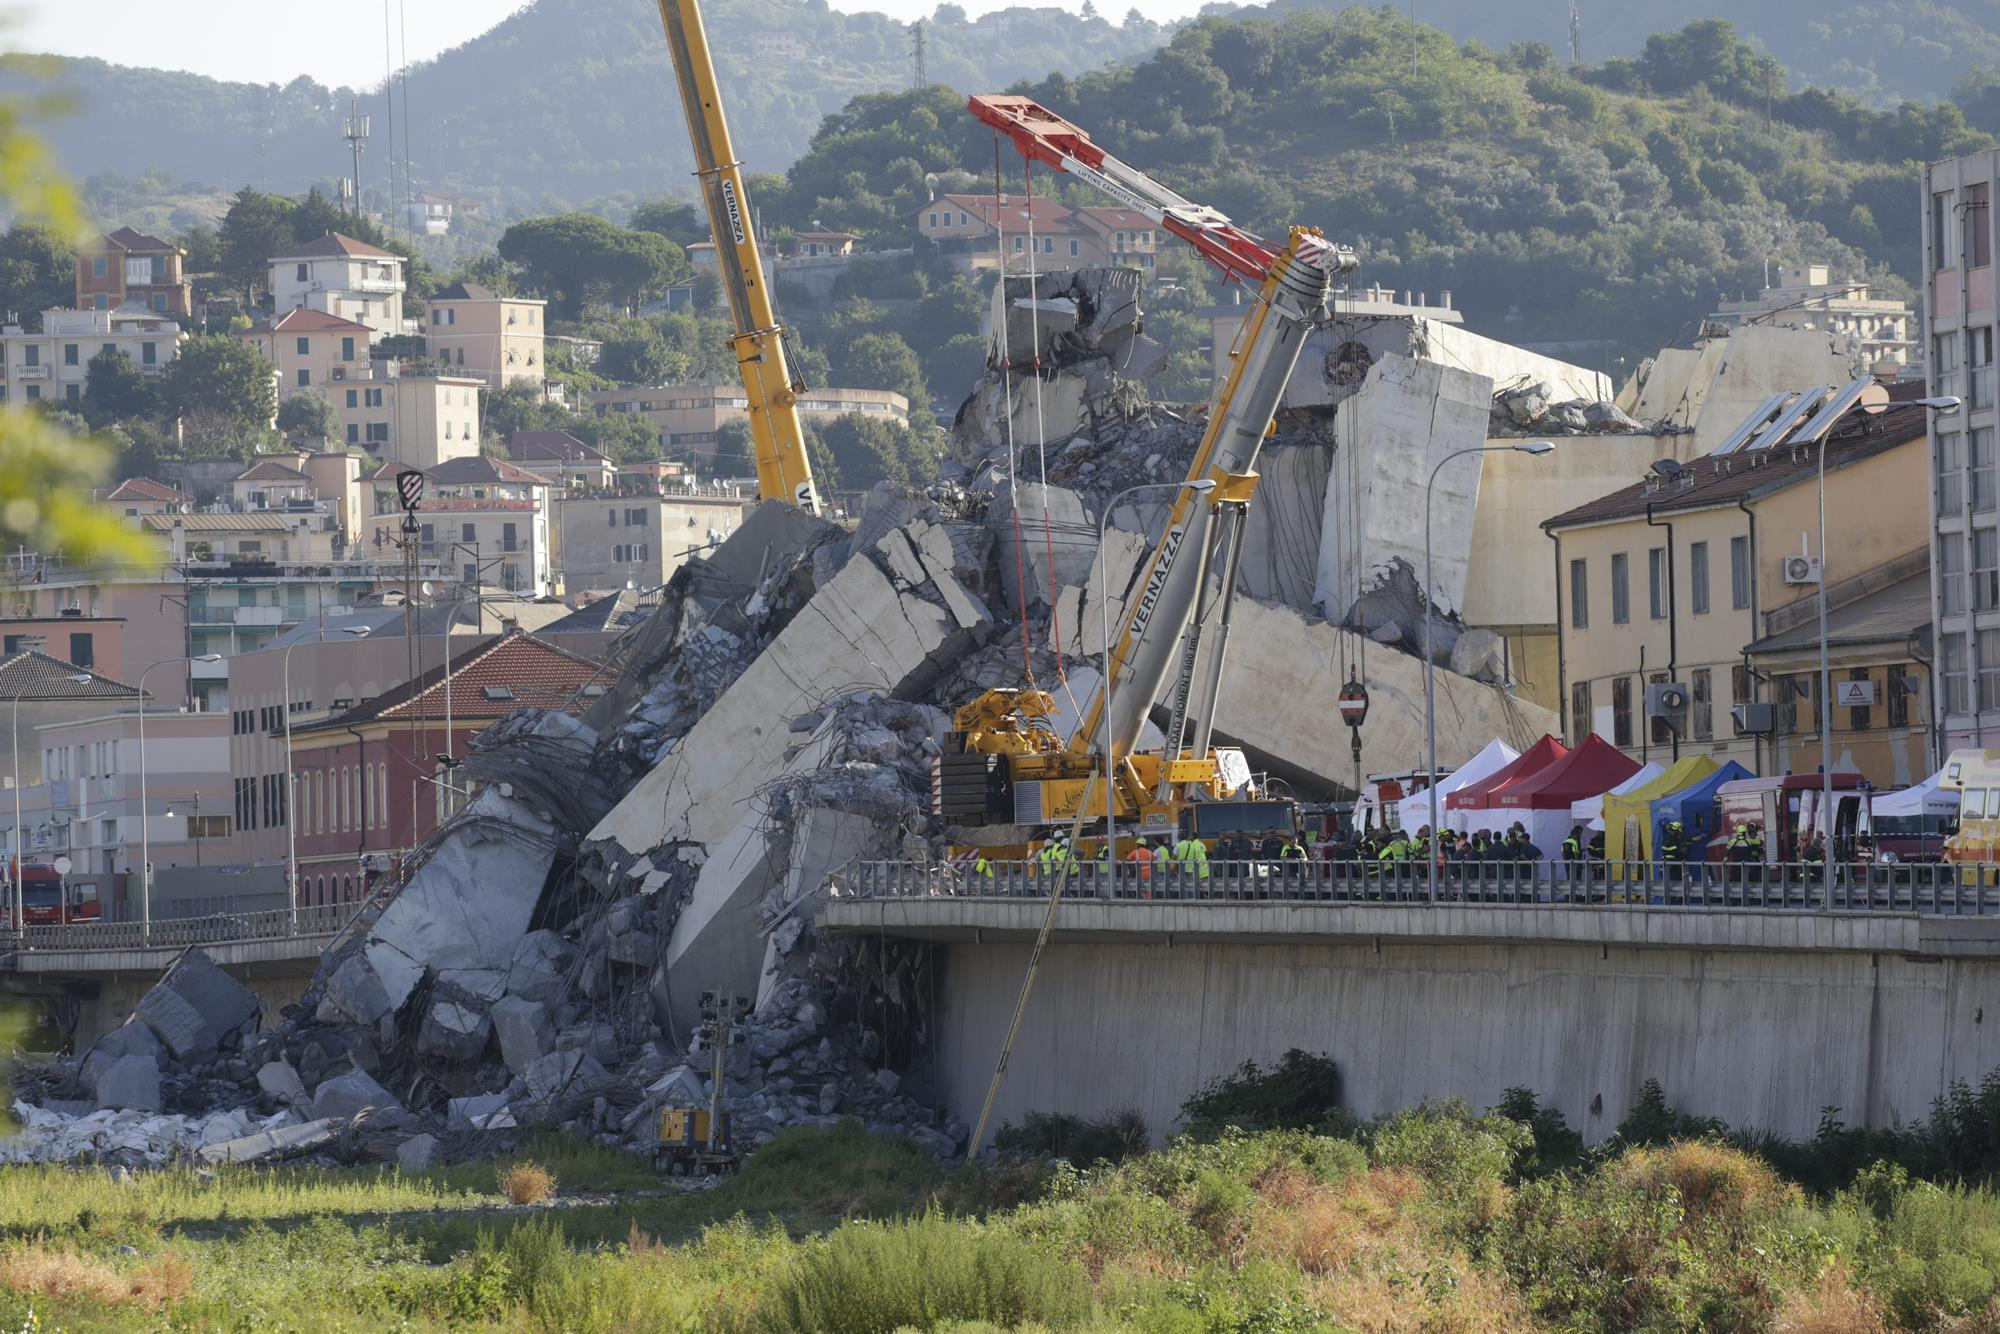 Speculation mounts over cause of bridge collapse in Genoa | News